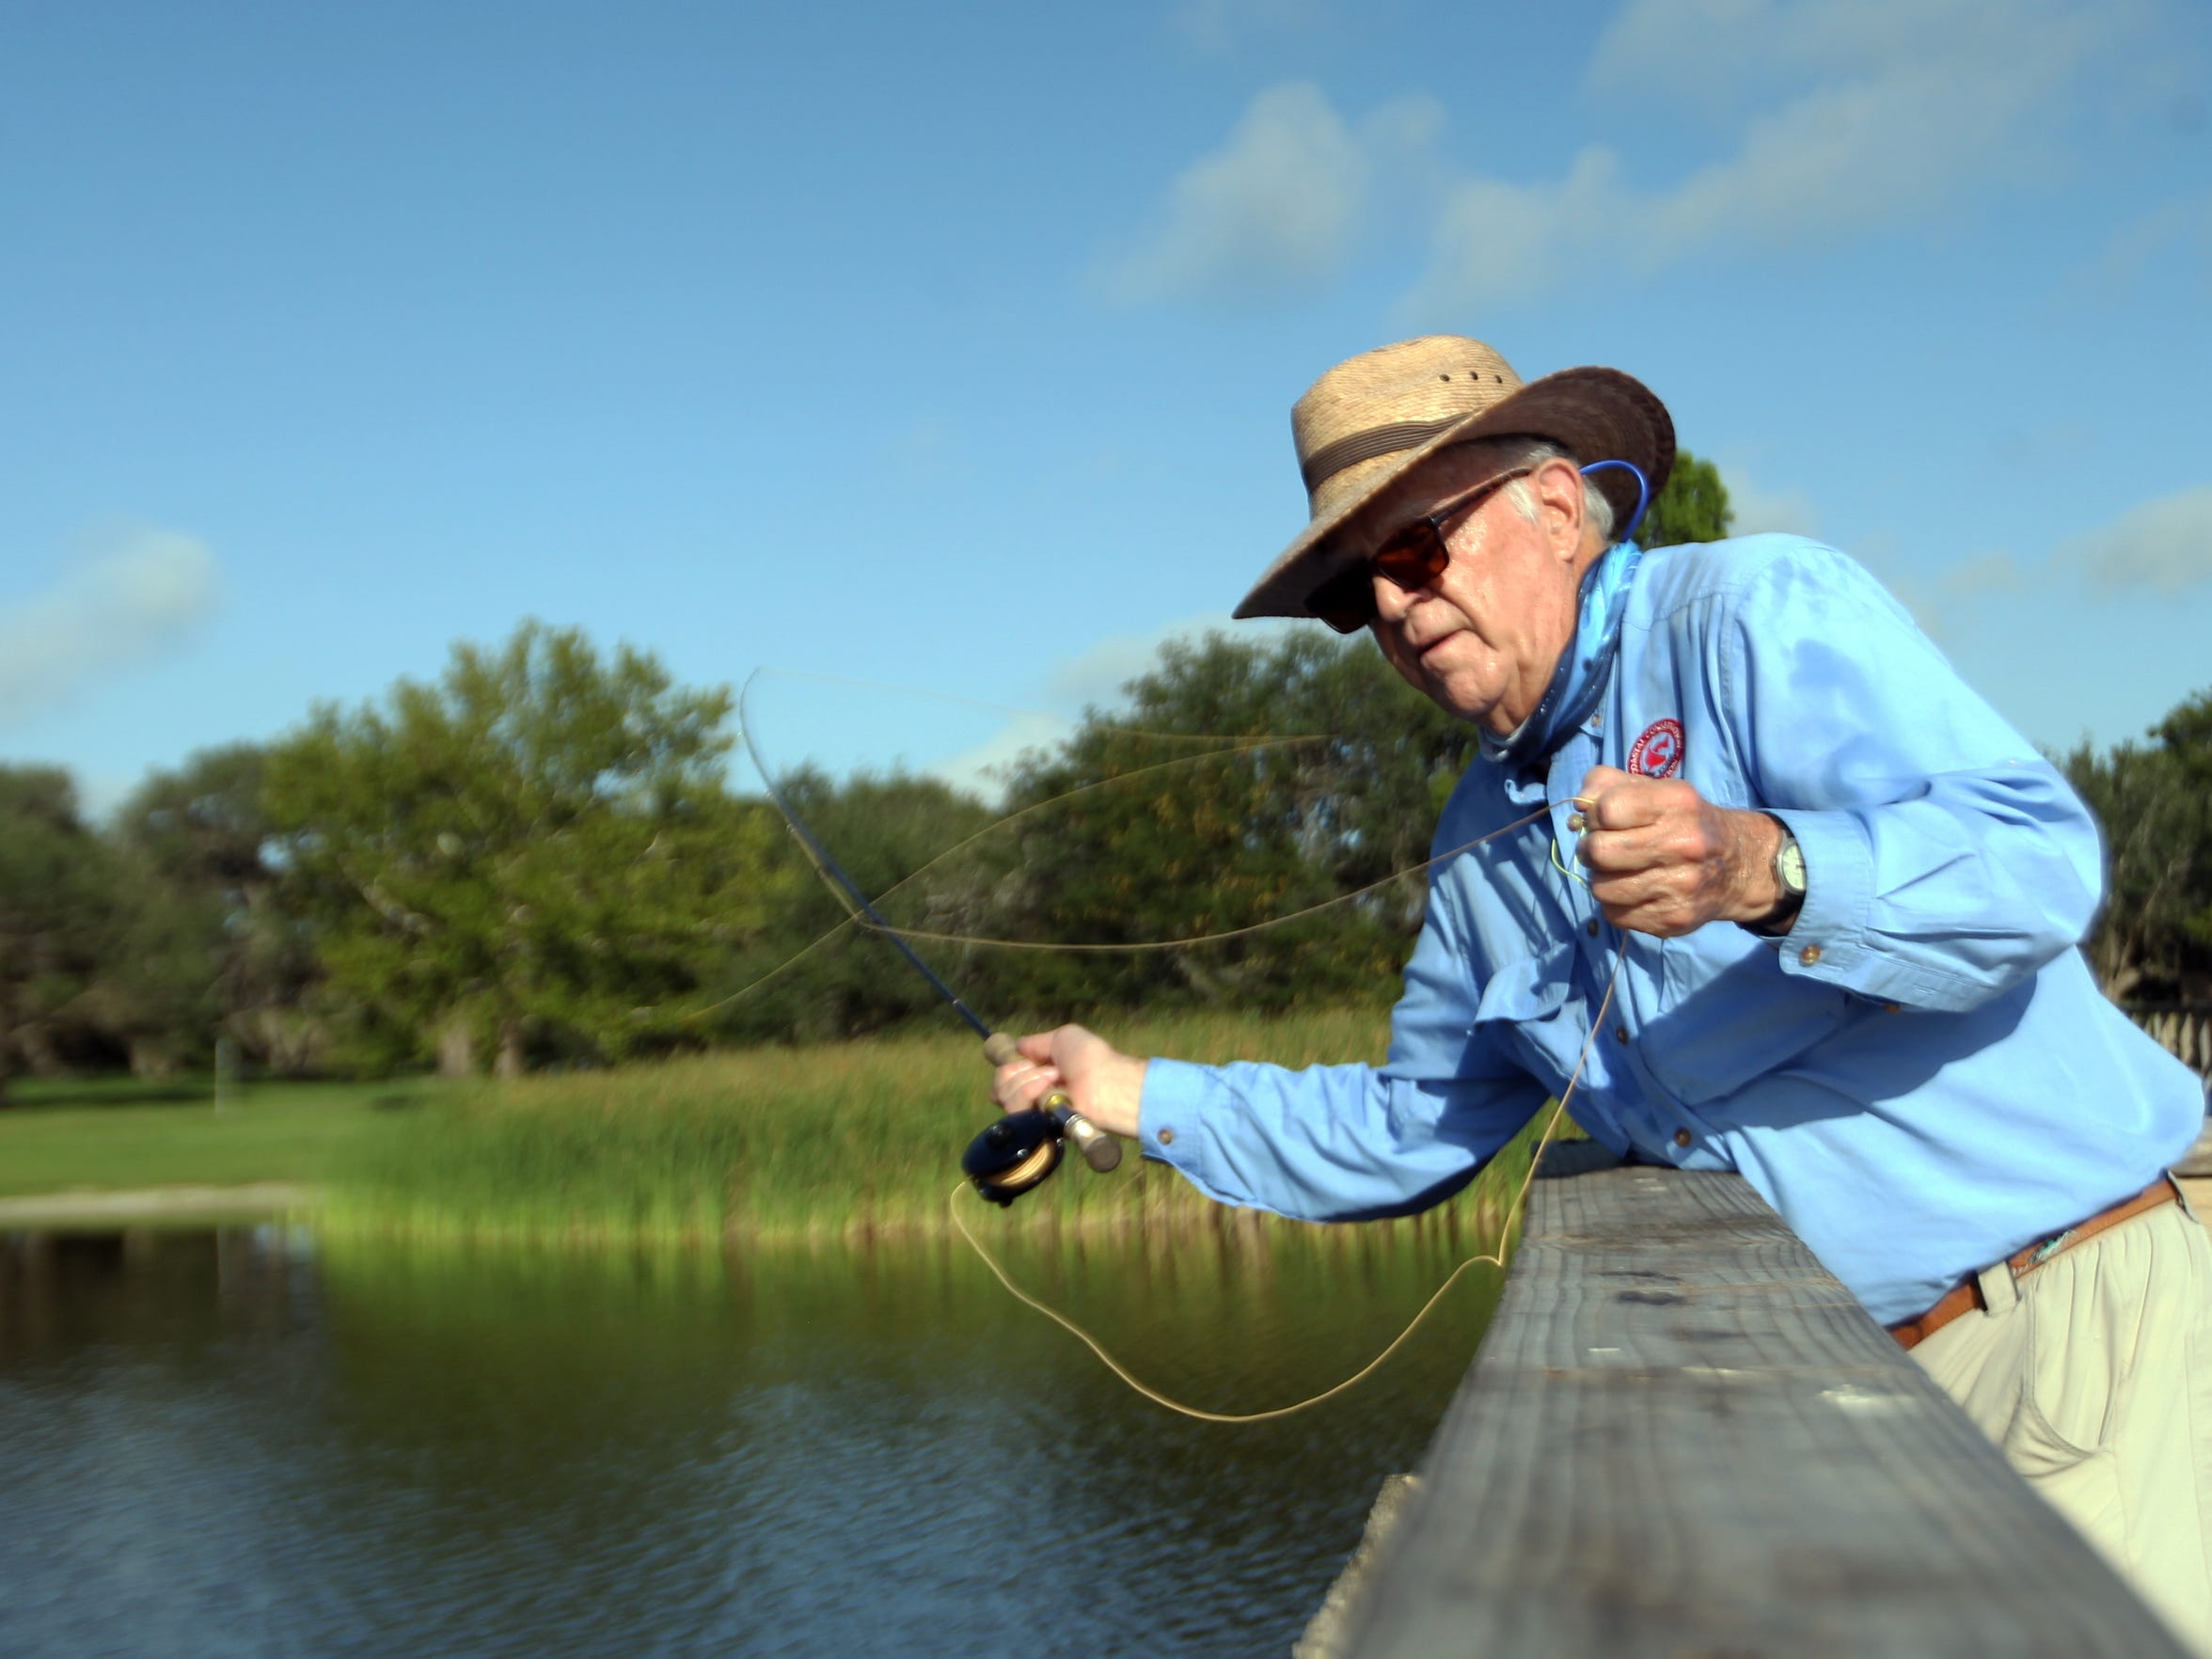 Phil Shook is an expert fly fisherman who wrote the